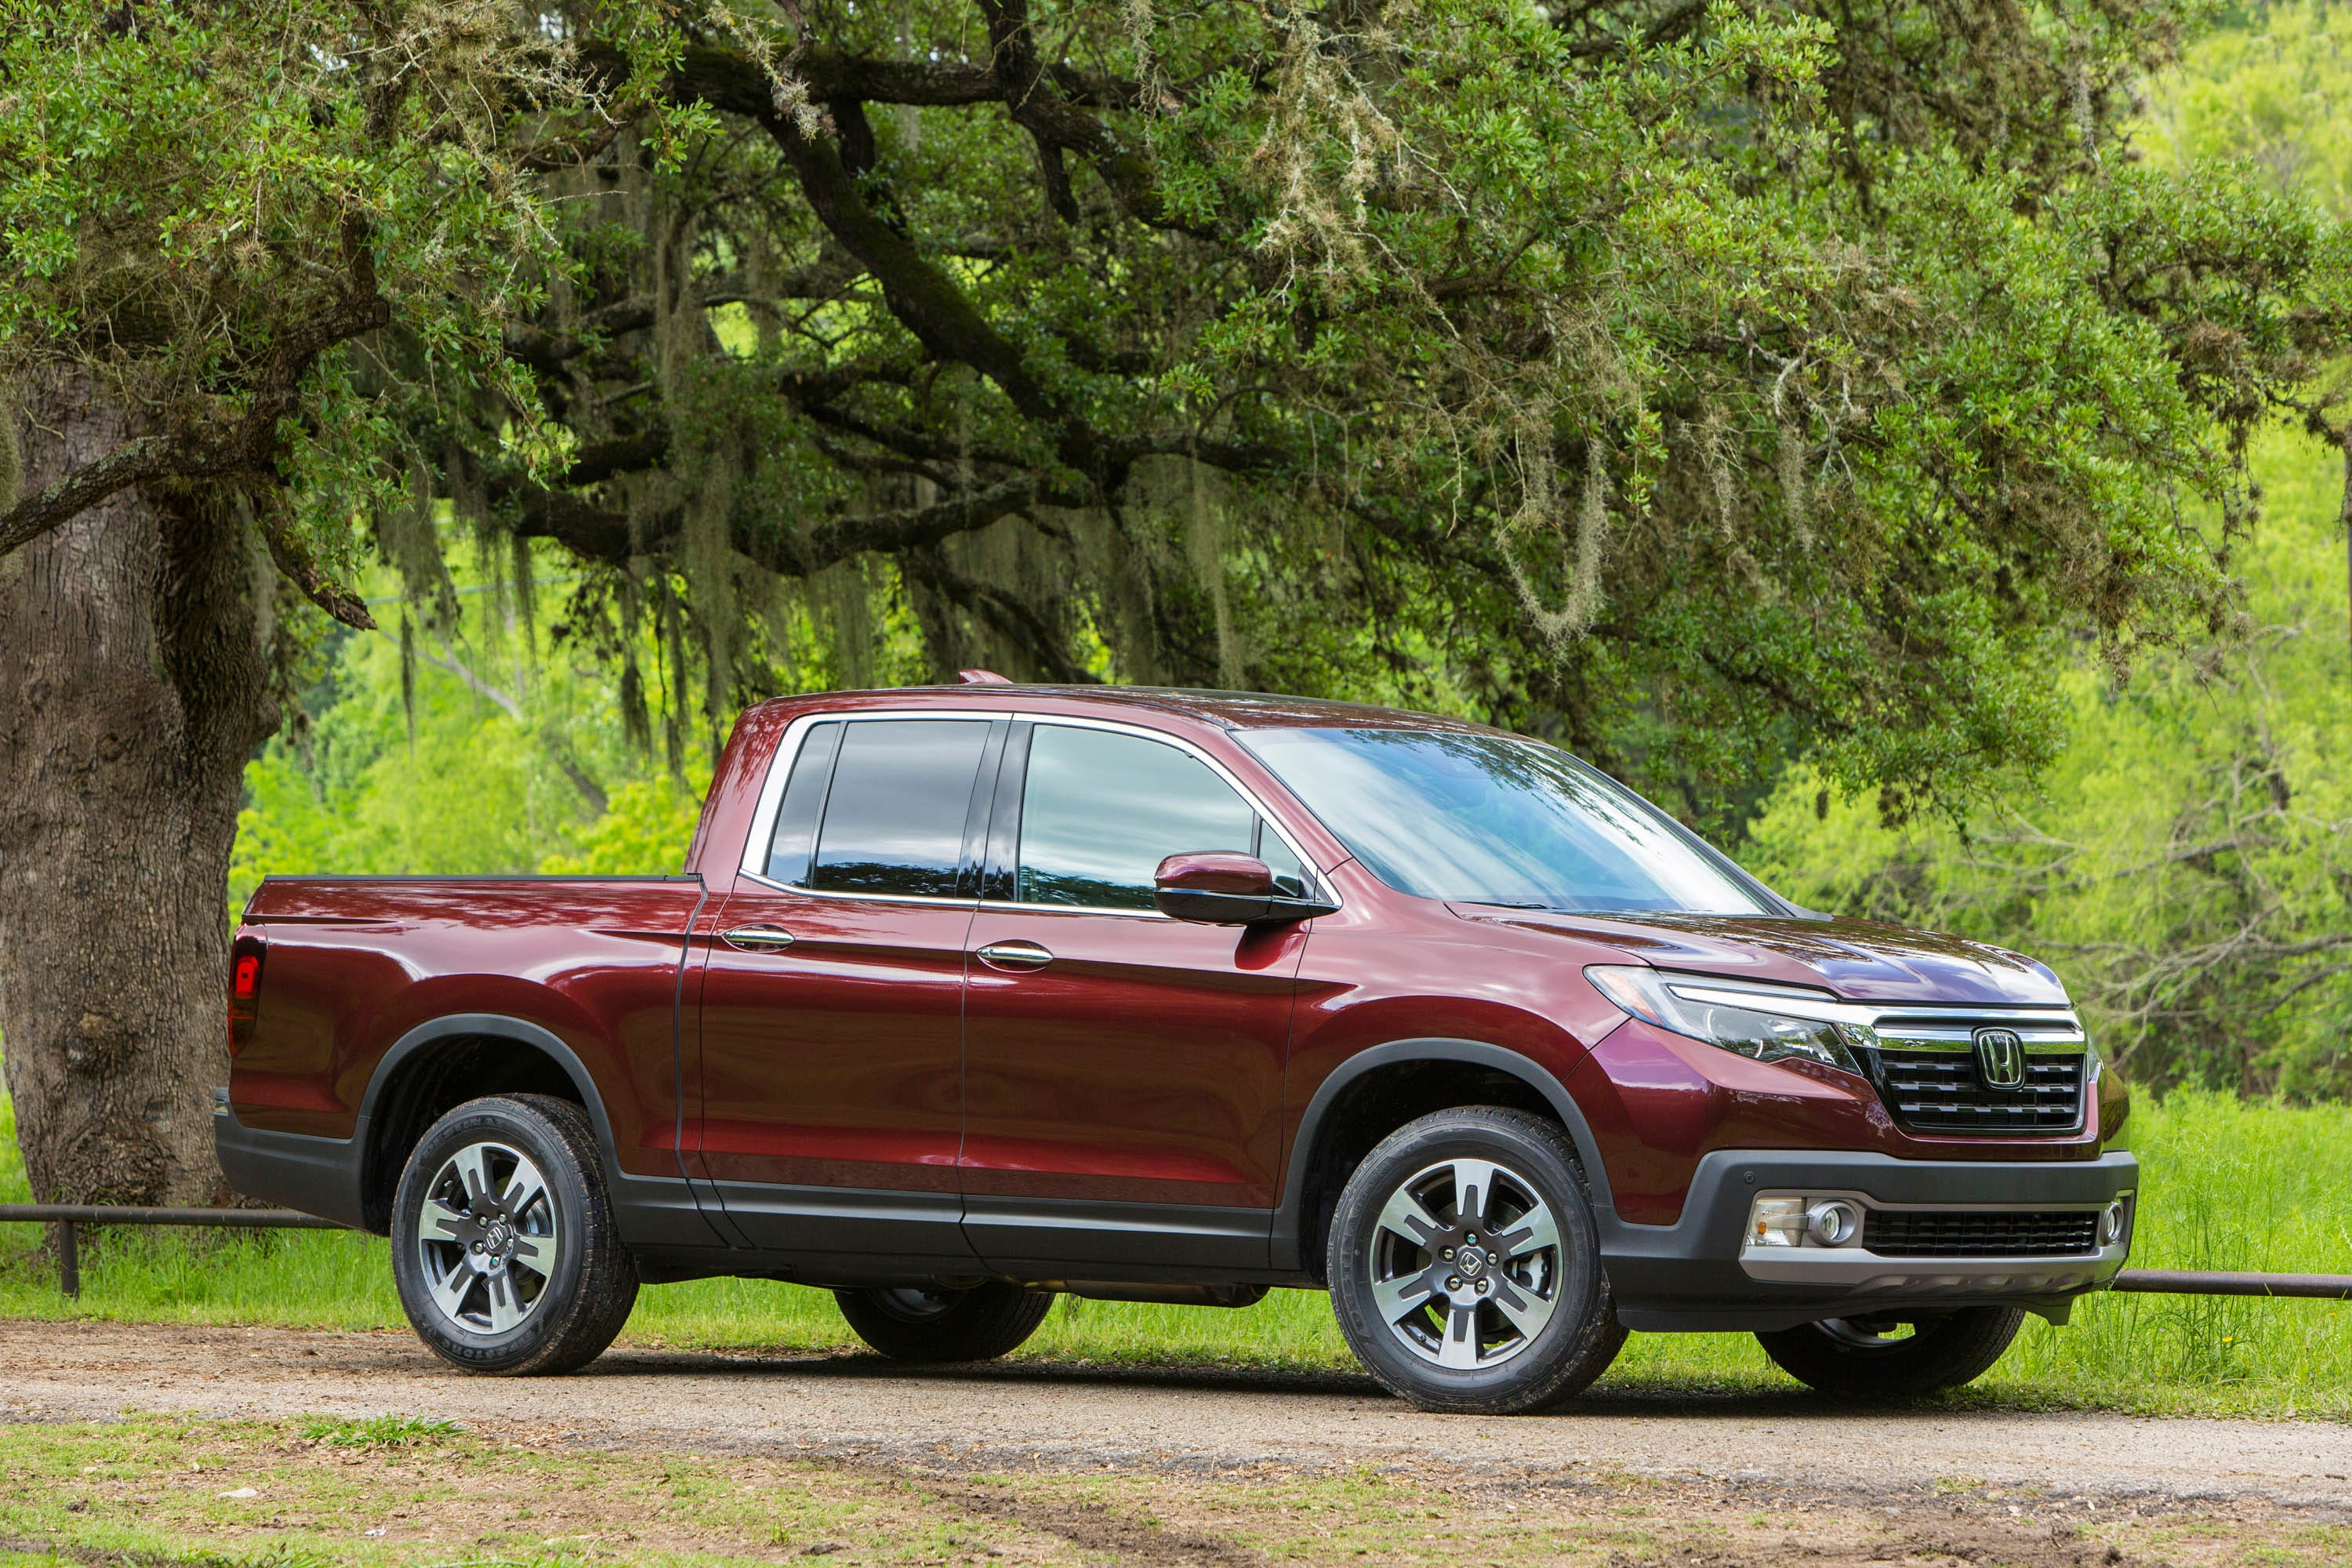 review honda s new ridgeline tries to reinvent the pickup again rh freep com